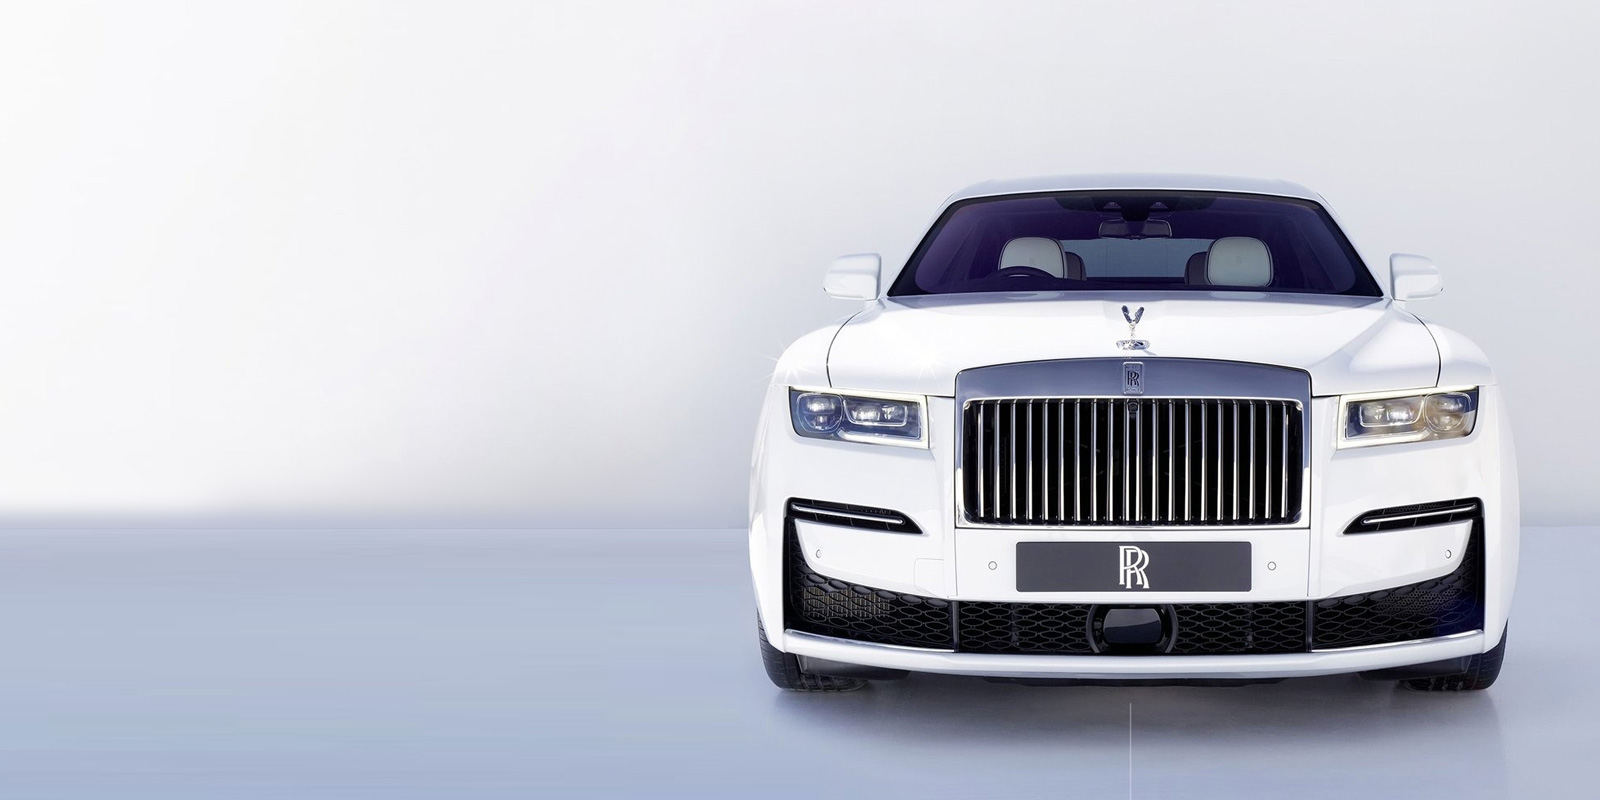 New Rolls-Royce Ghost Series Cars at Grange